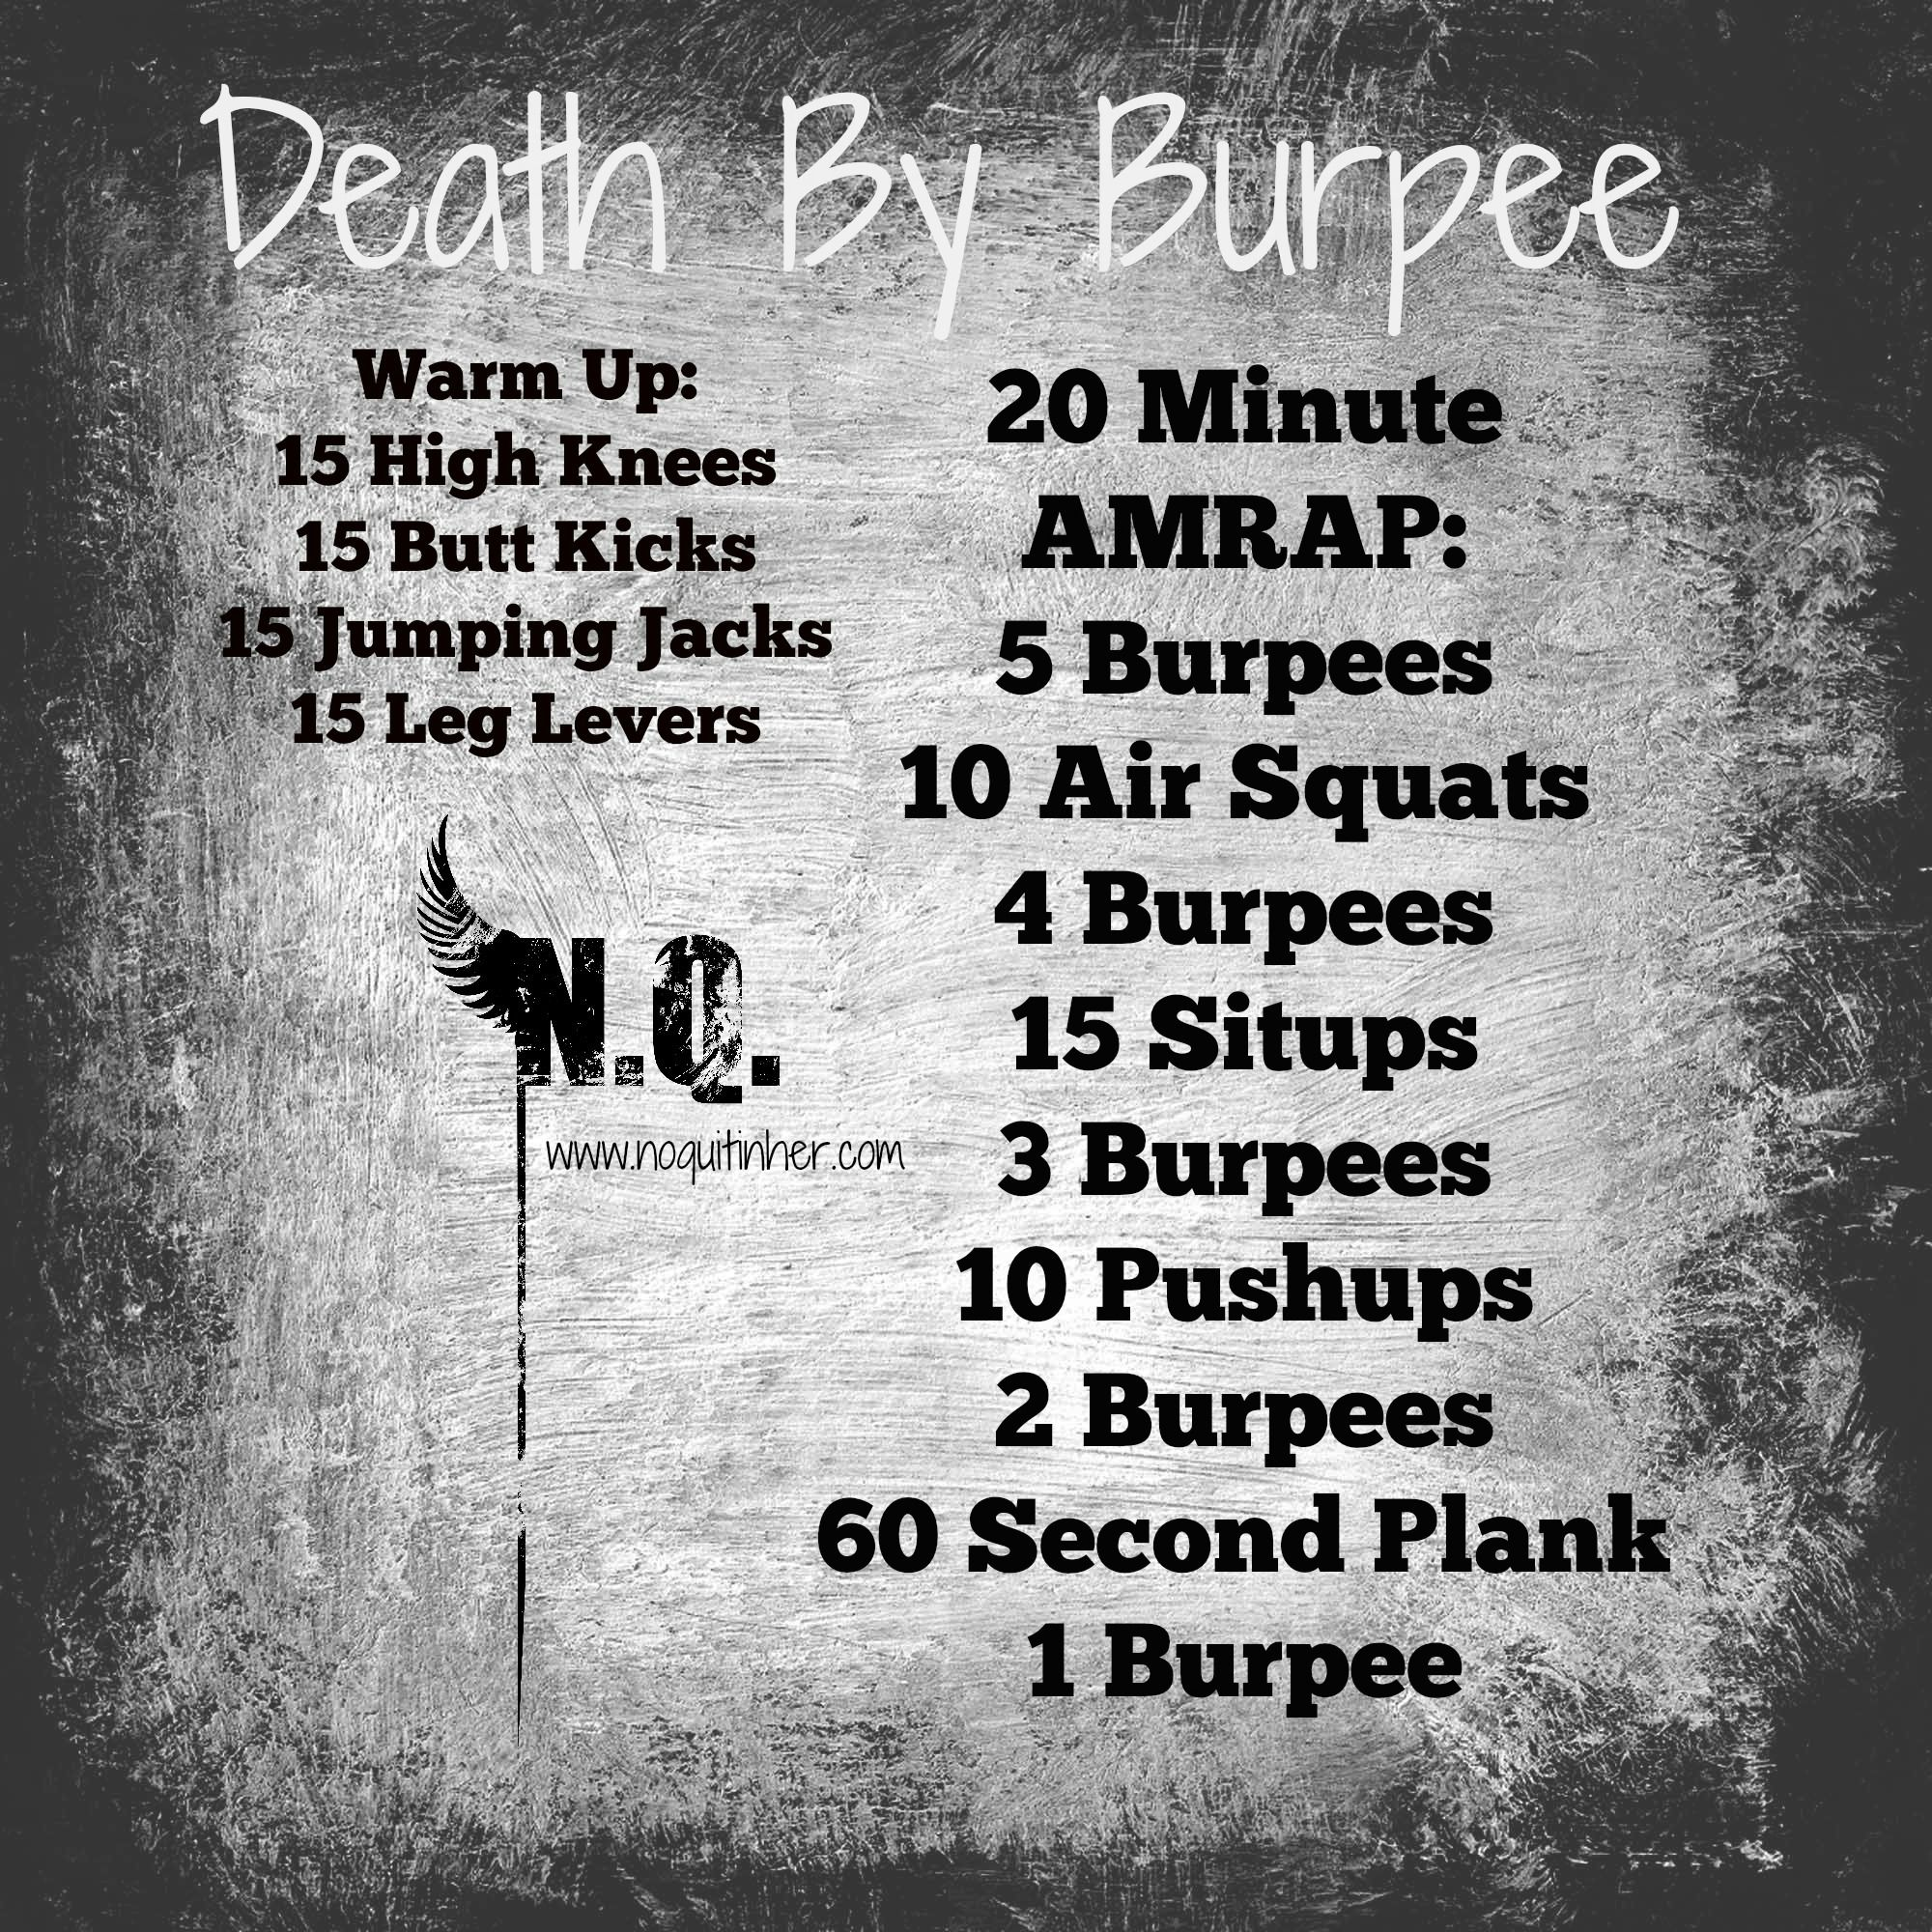 At home/travel Crossfit Style workout for an intermediate to